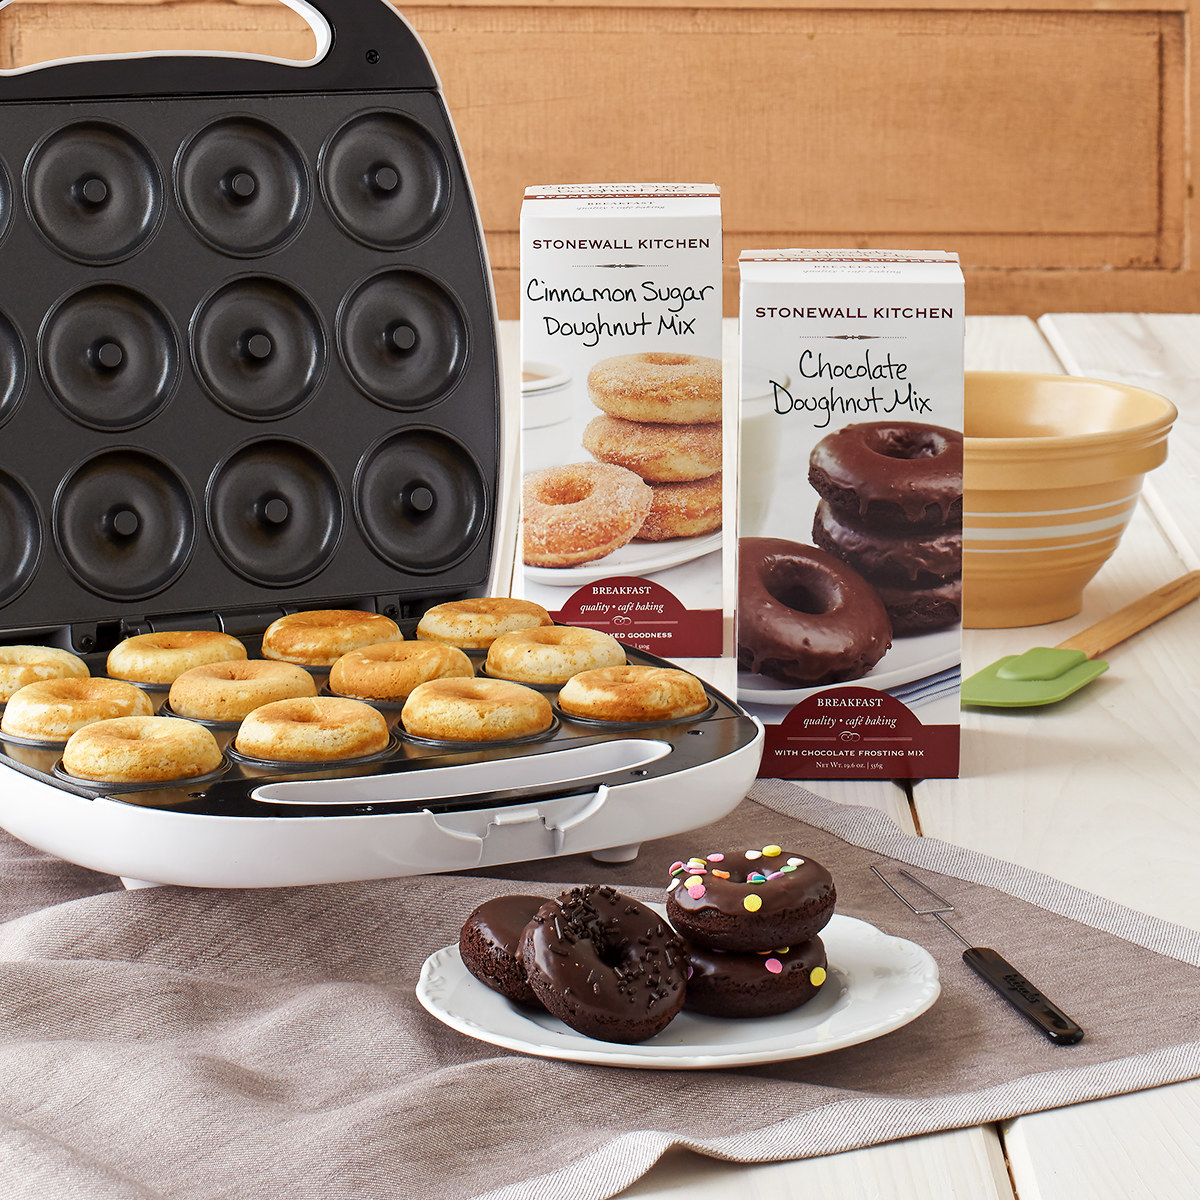 Mini doughnuts cooked in a doughnut maker alongside the two doughnut mixes